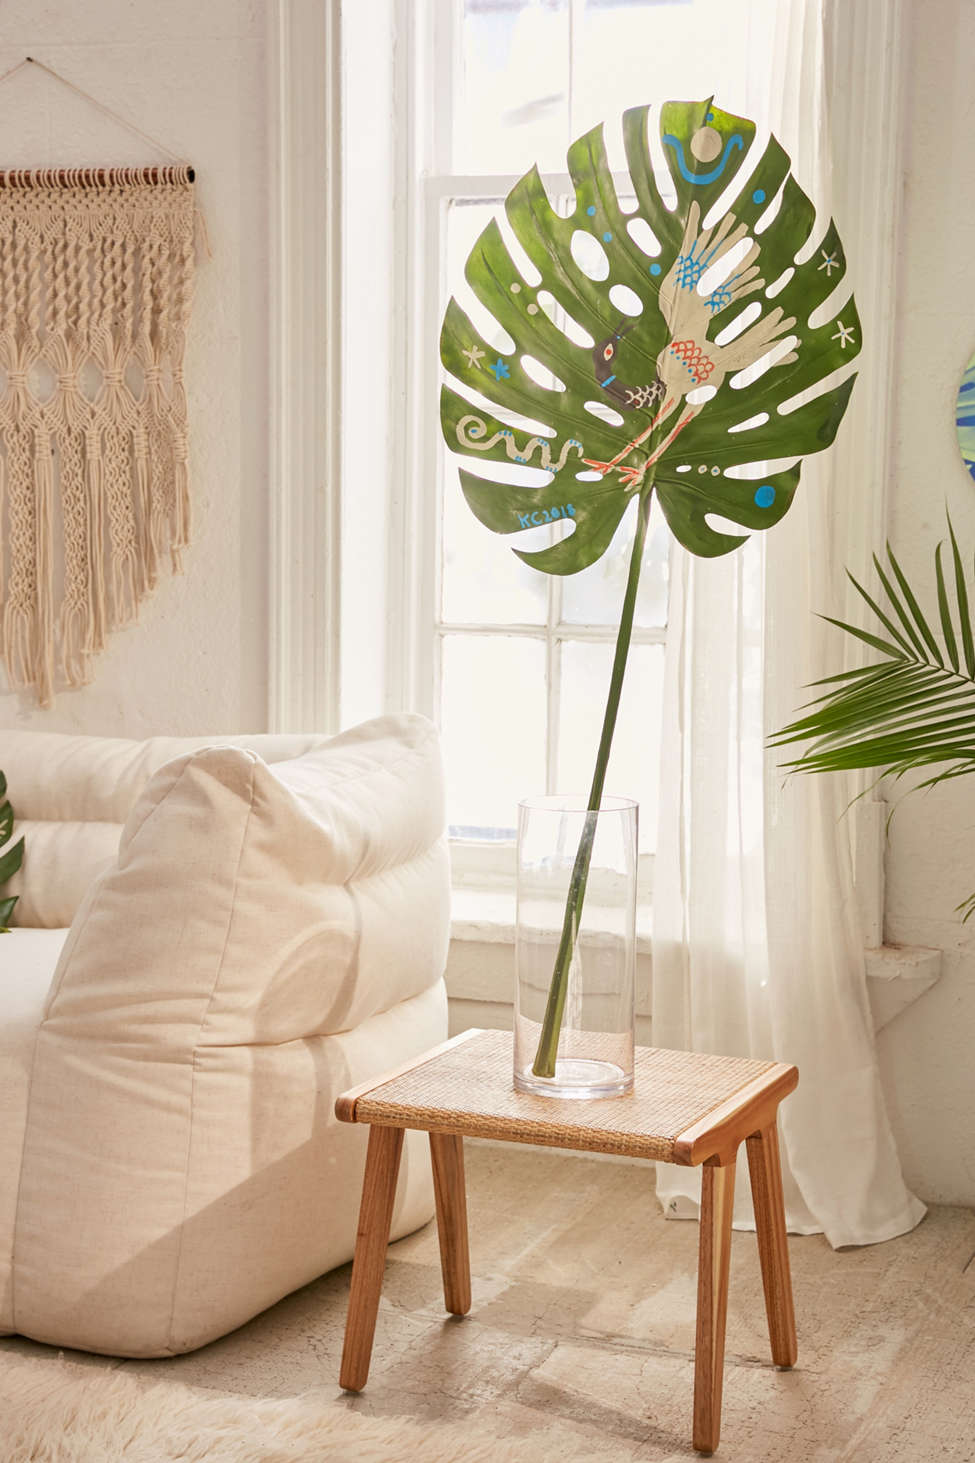 Slide View: 2: Kris Chau For UO Hand-Painted White Bird Faux Leaf